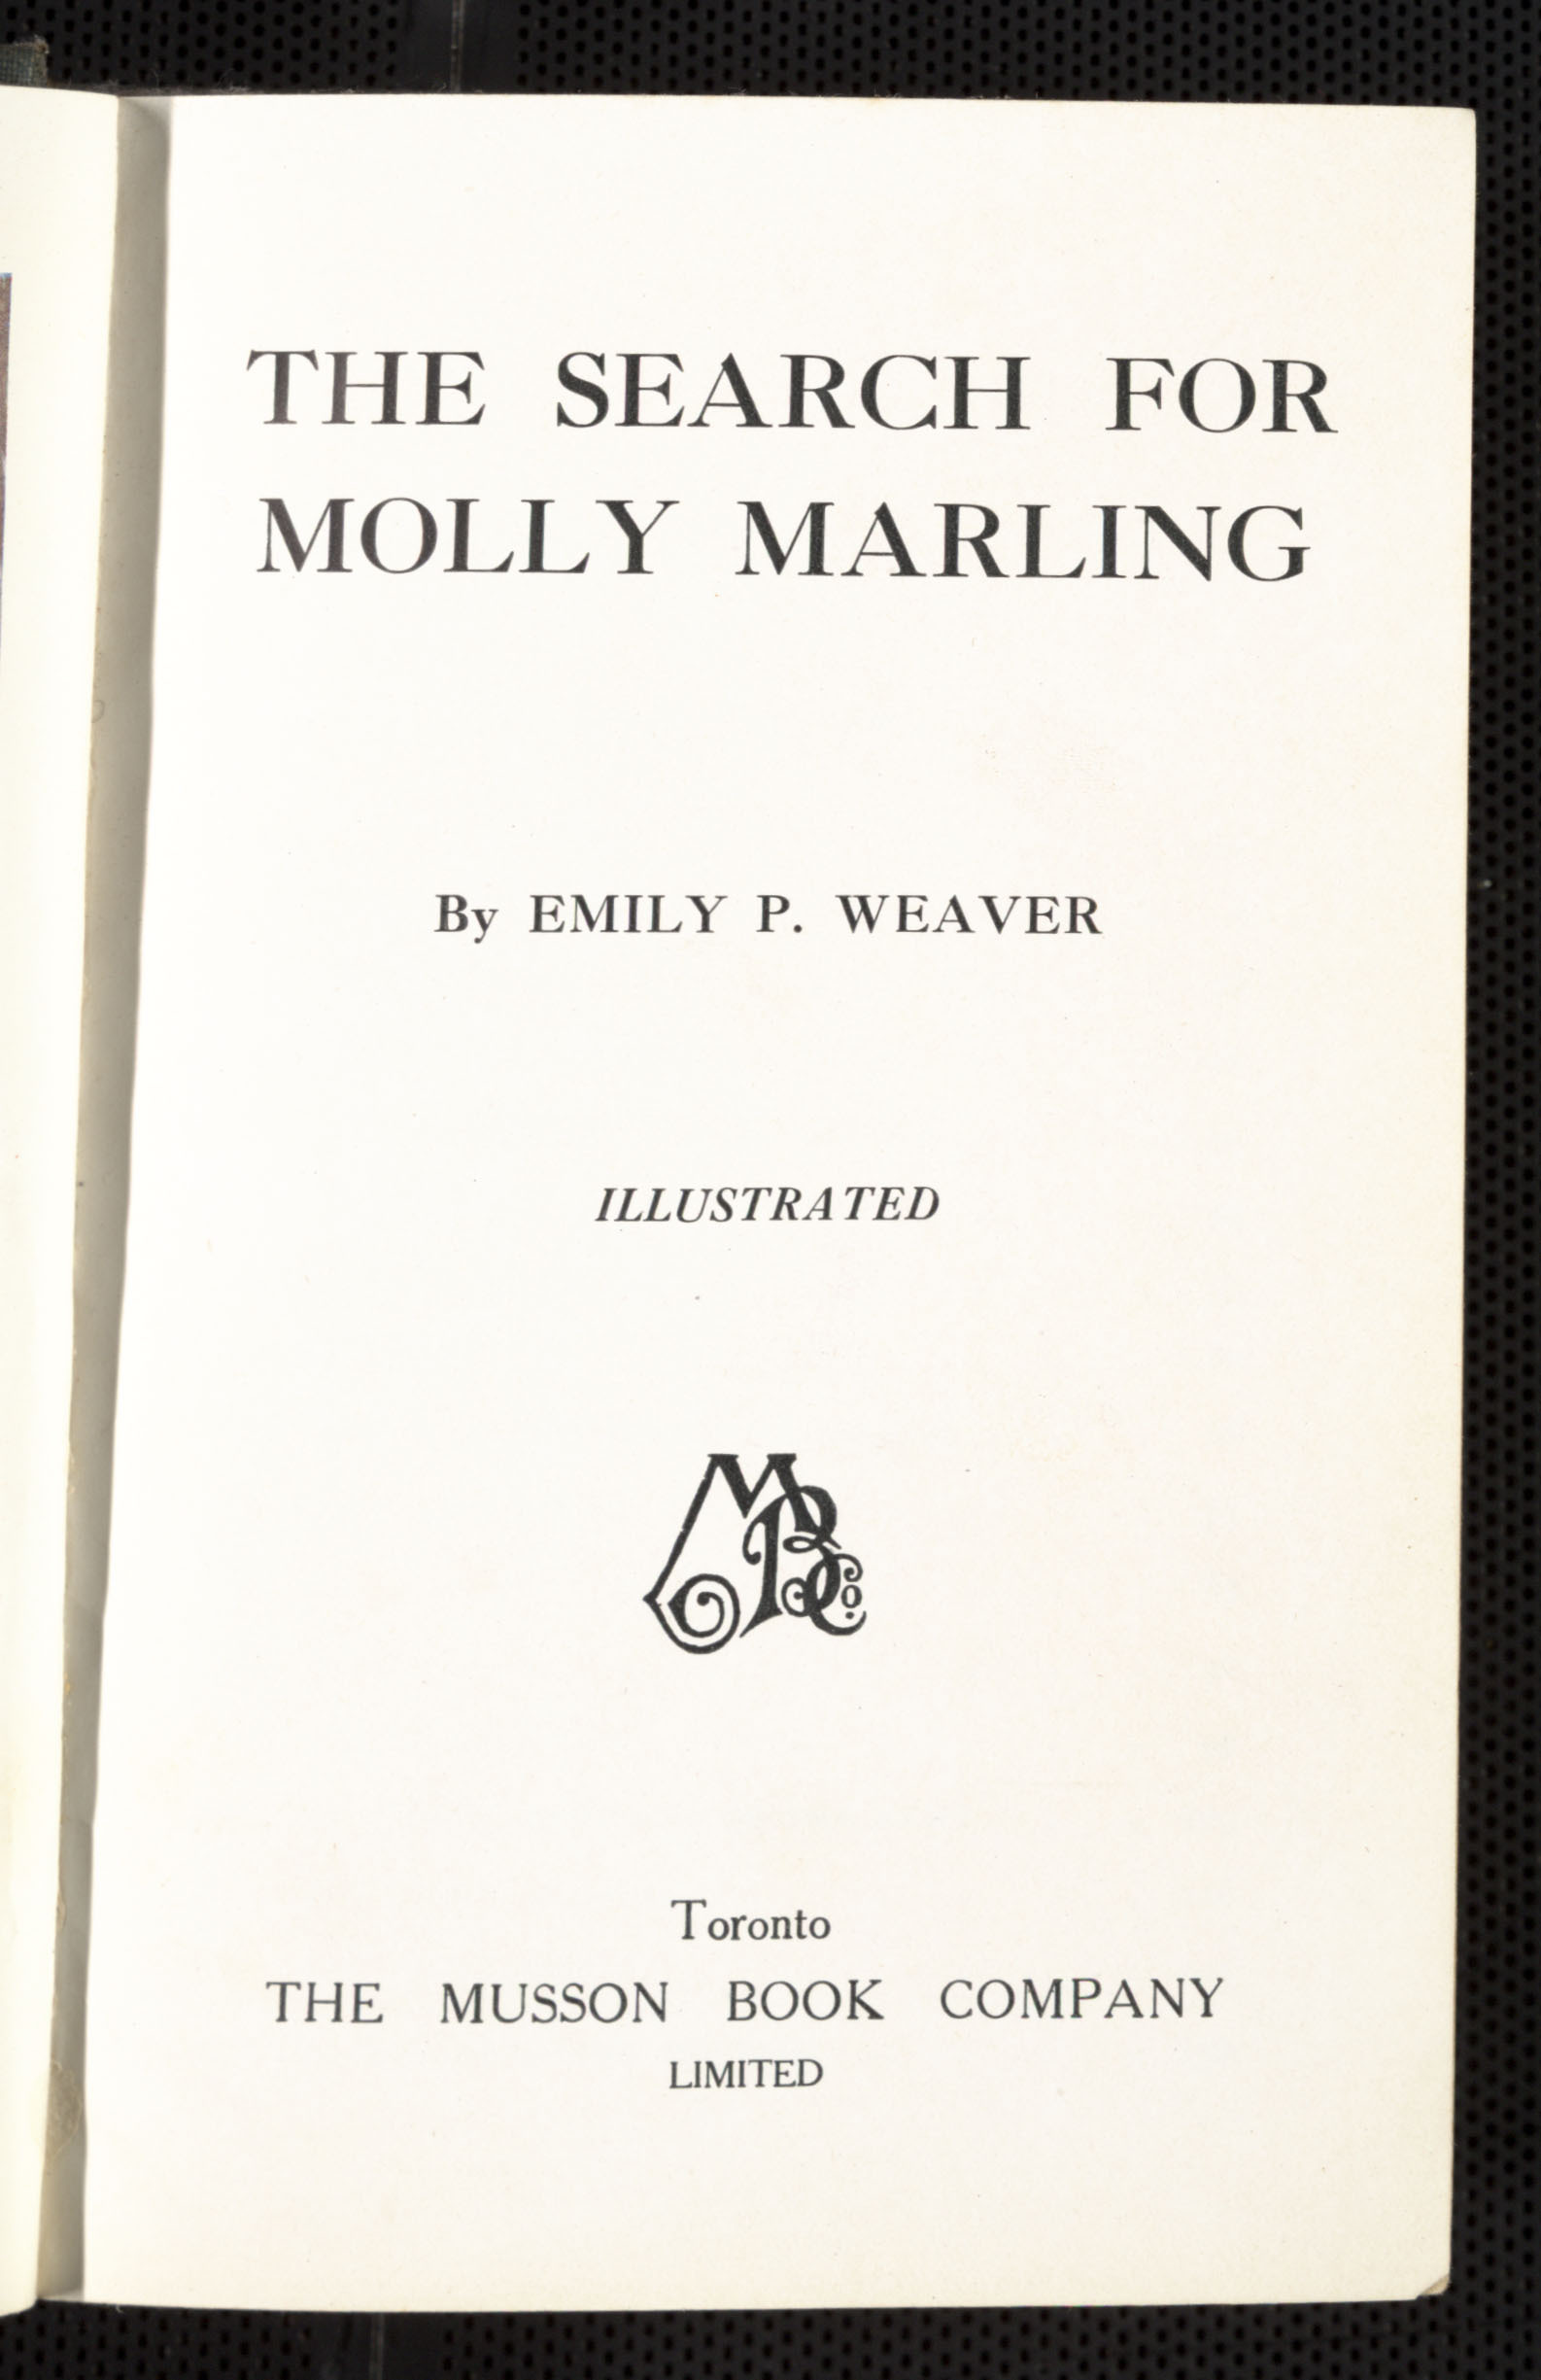 The Search for Molly Marling